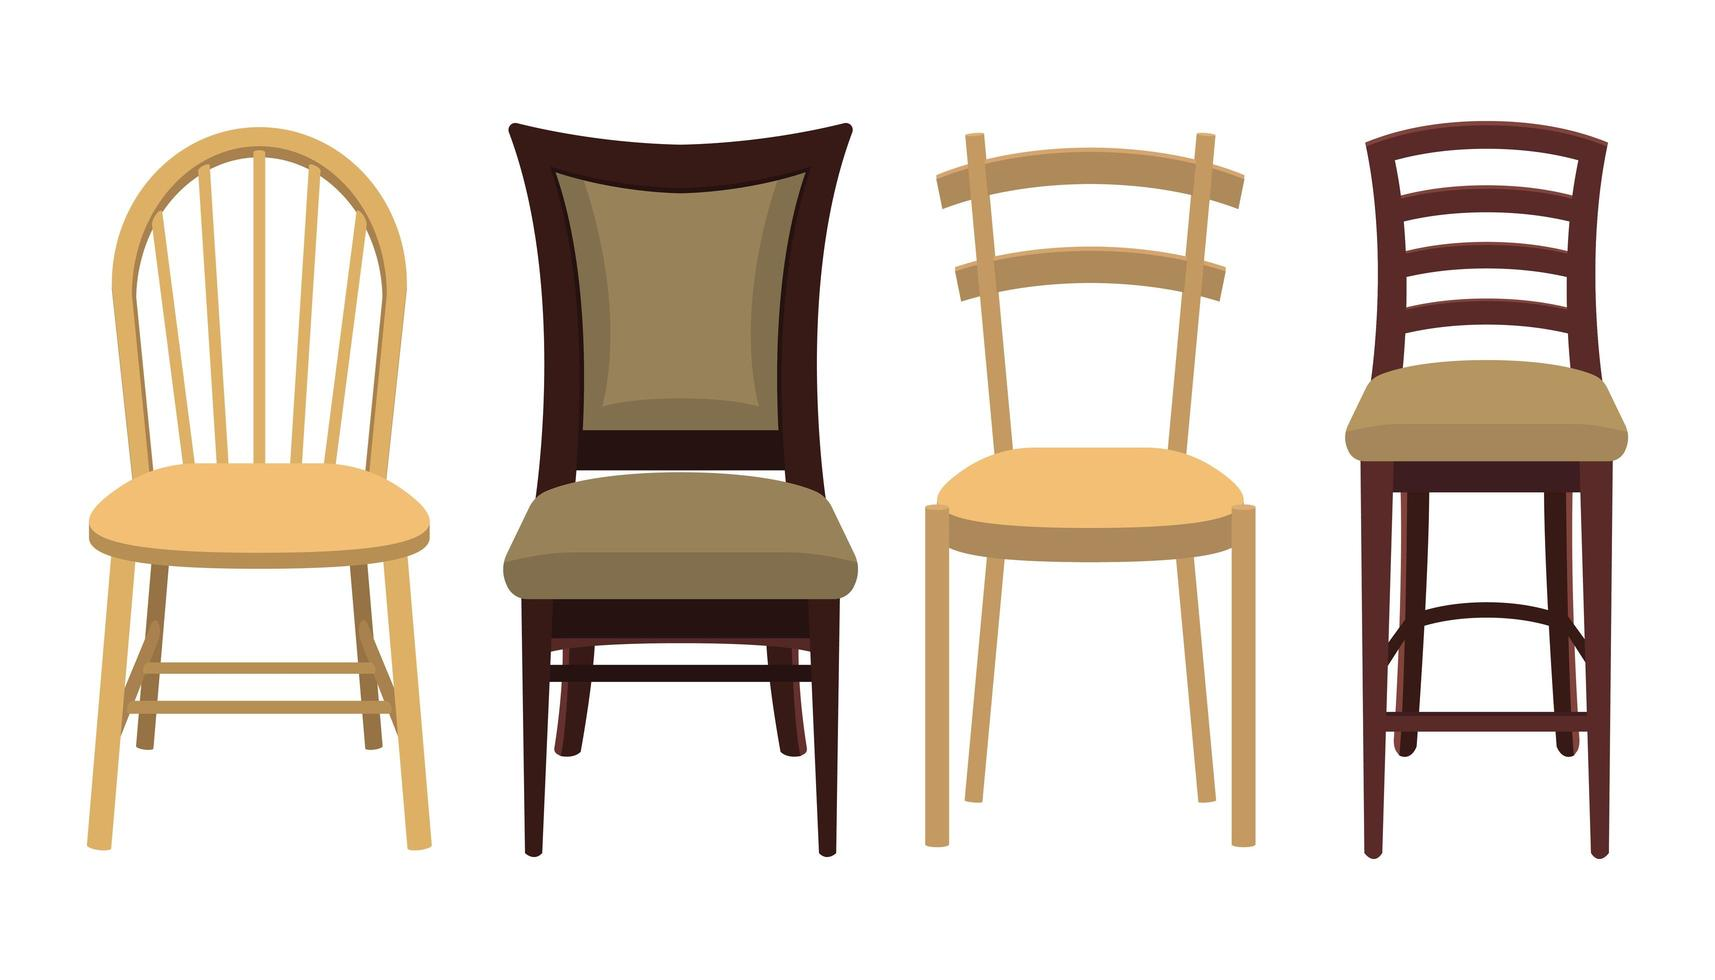 Wood Chairs on White vector